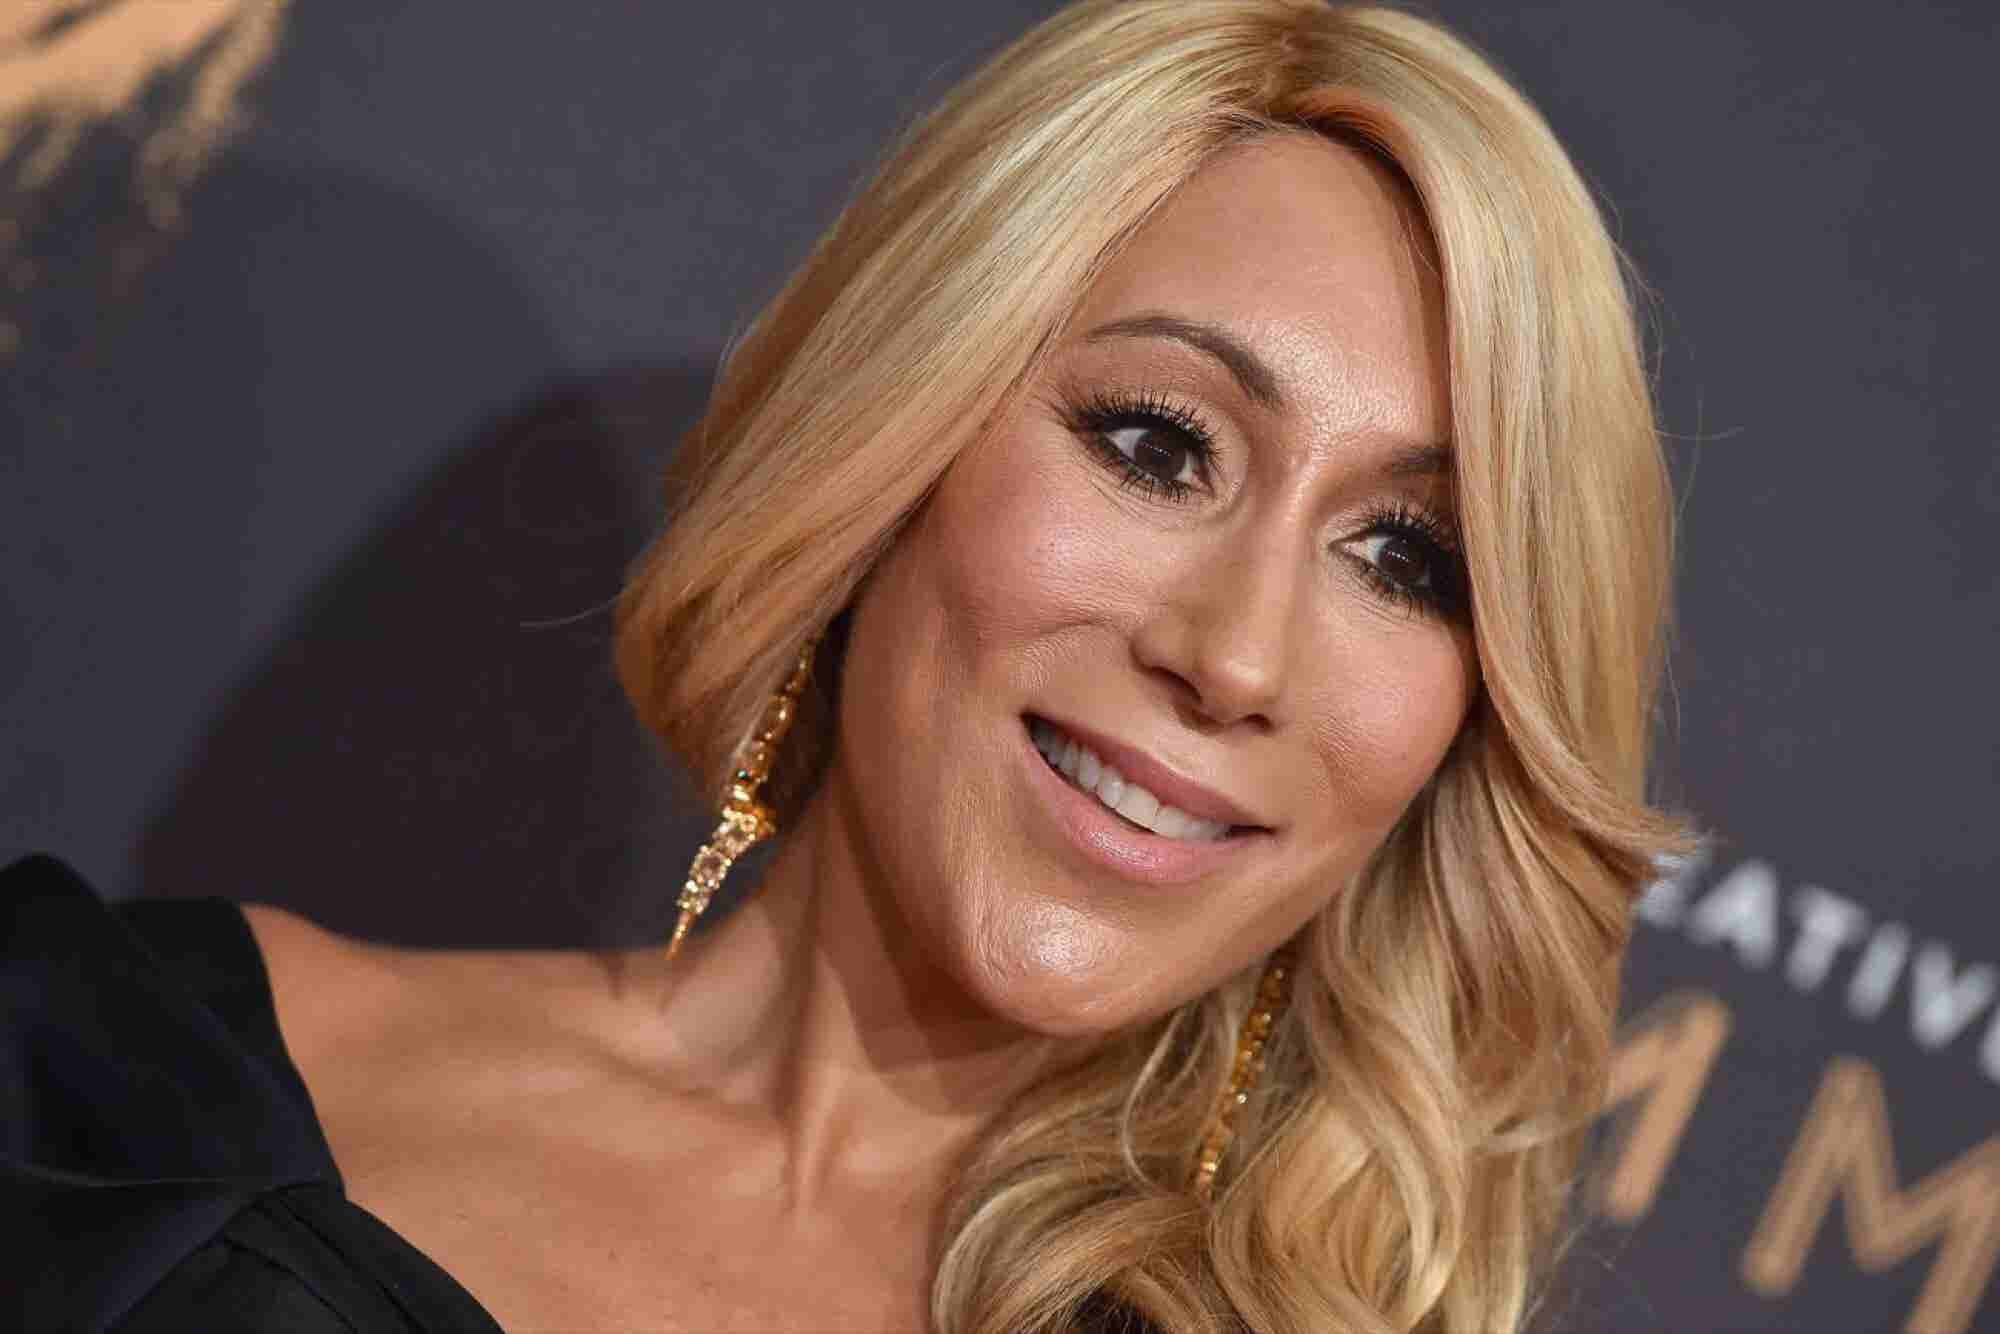 8 Quotes From Shark Tank's Lori Greiner That Will Make You Proud to be...